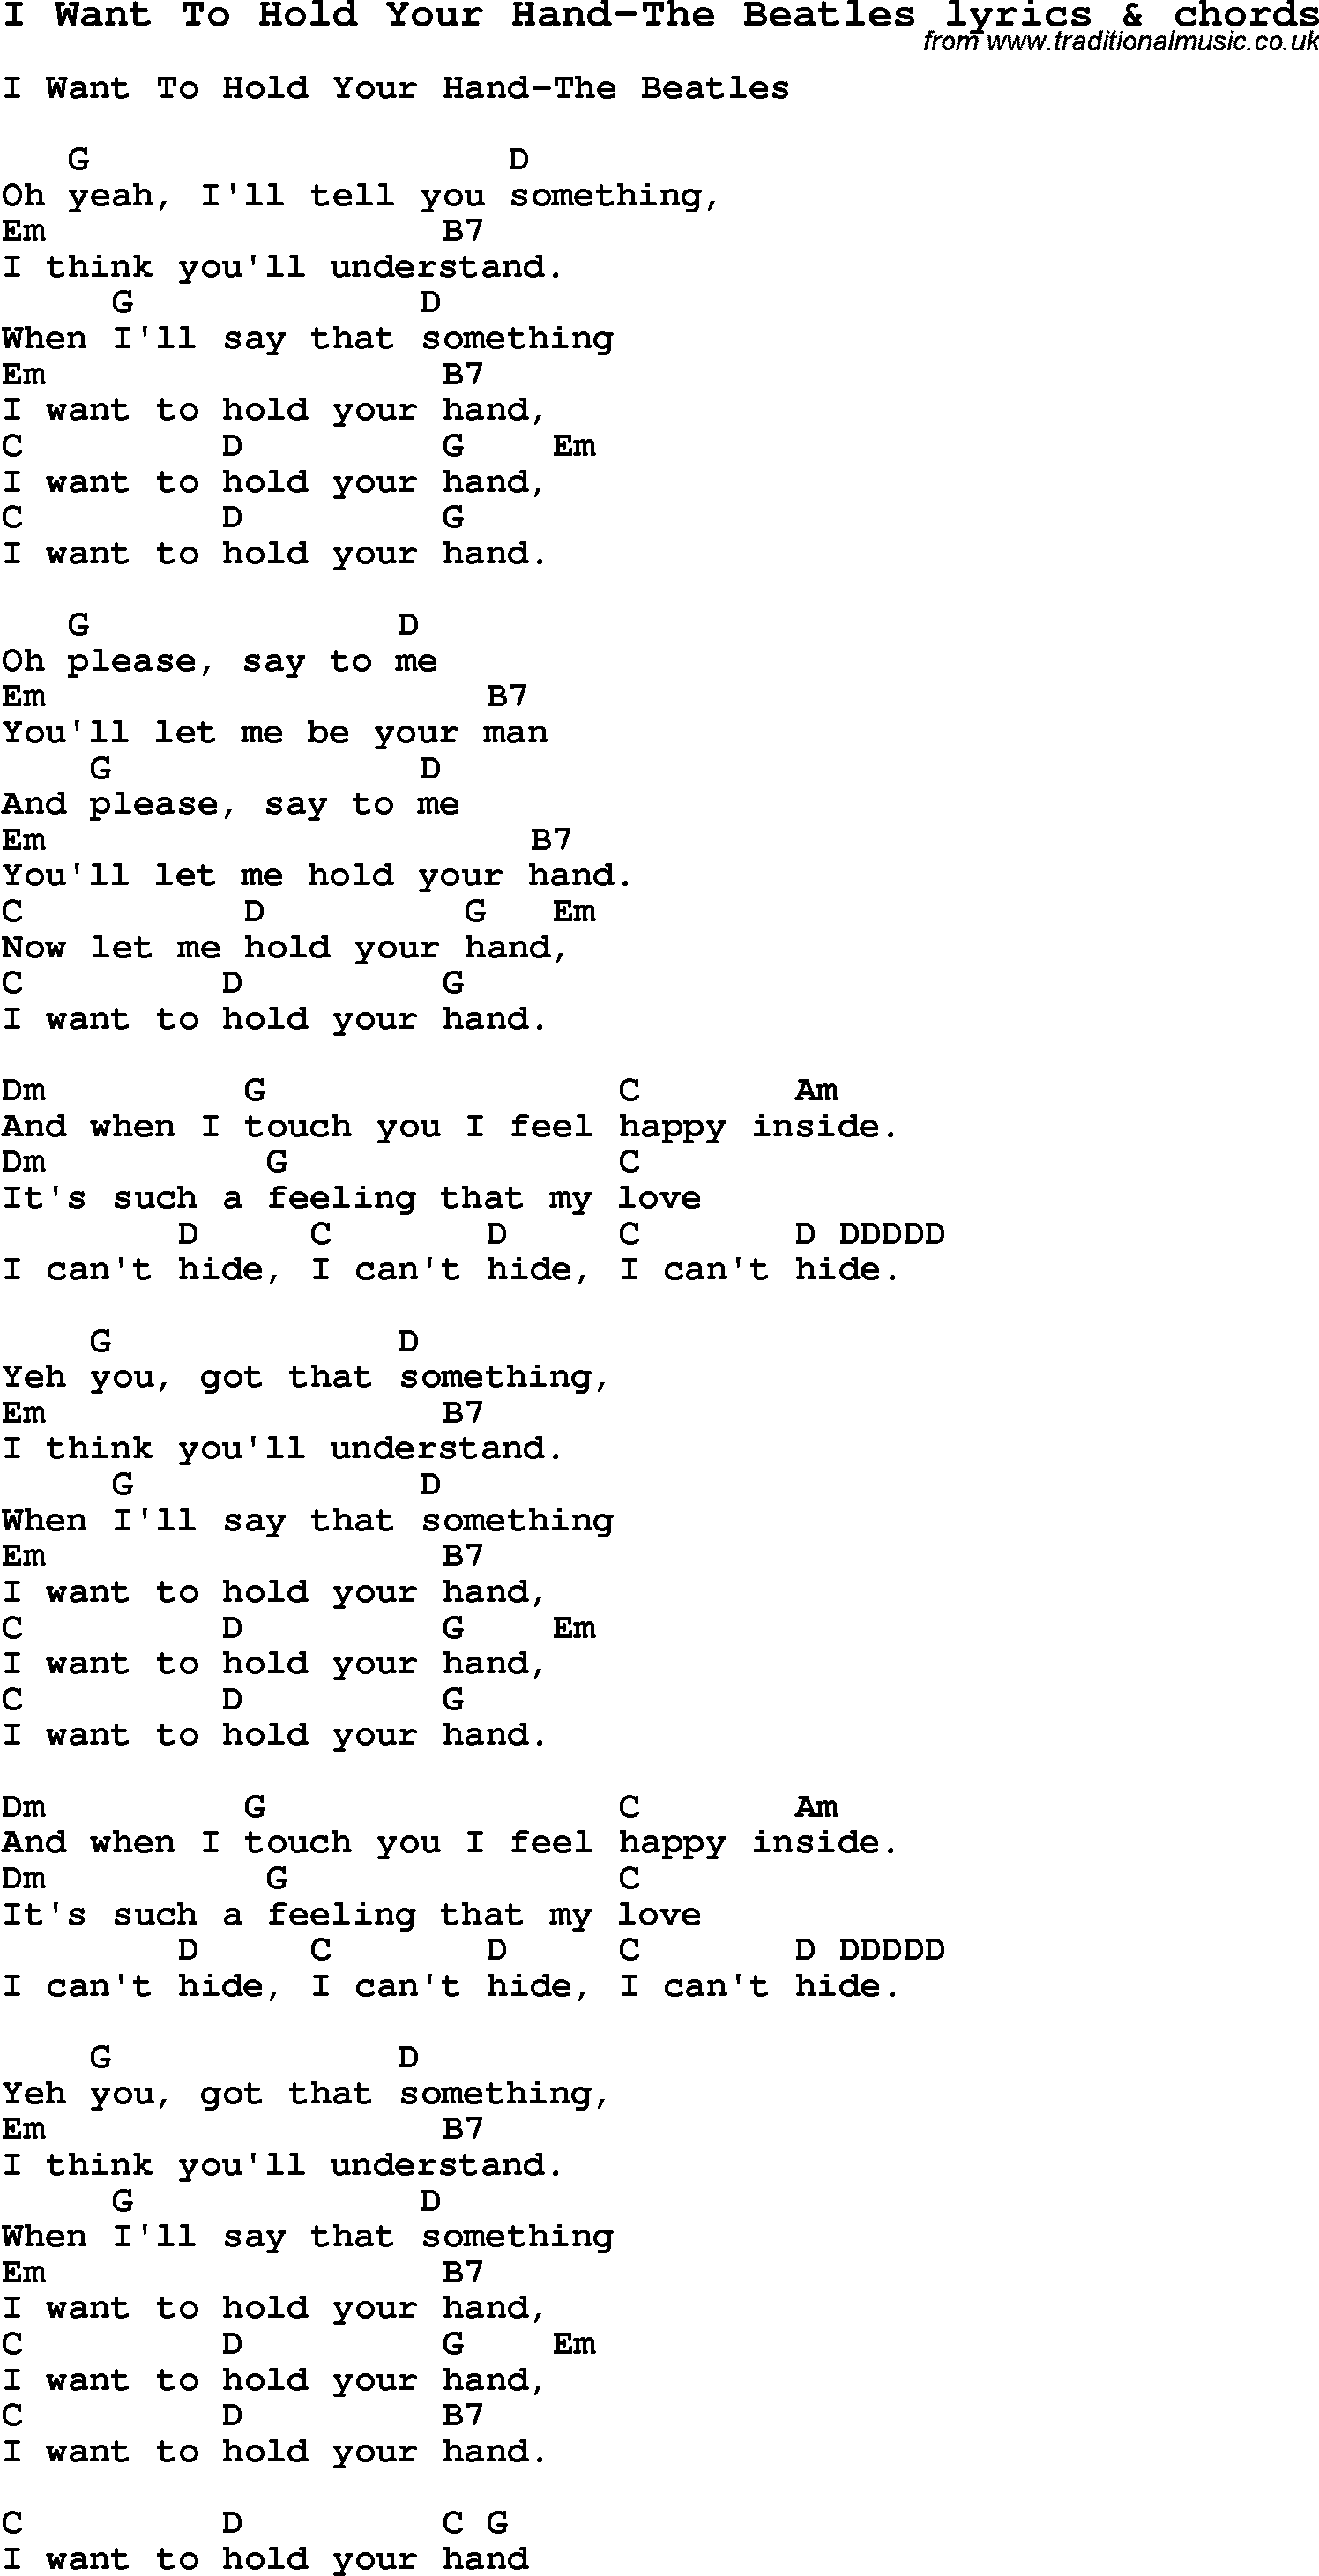 Love song lyrics for i want to hold your hand the beatles with love song lyrics for i want to hold your hand the beatles with chords hexwebz Images